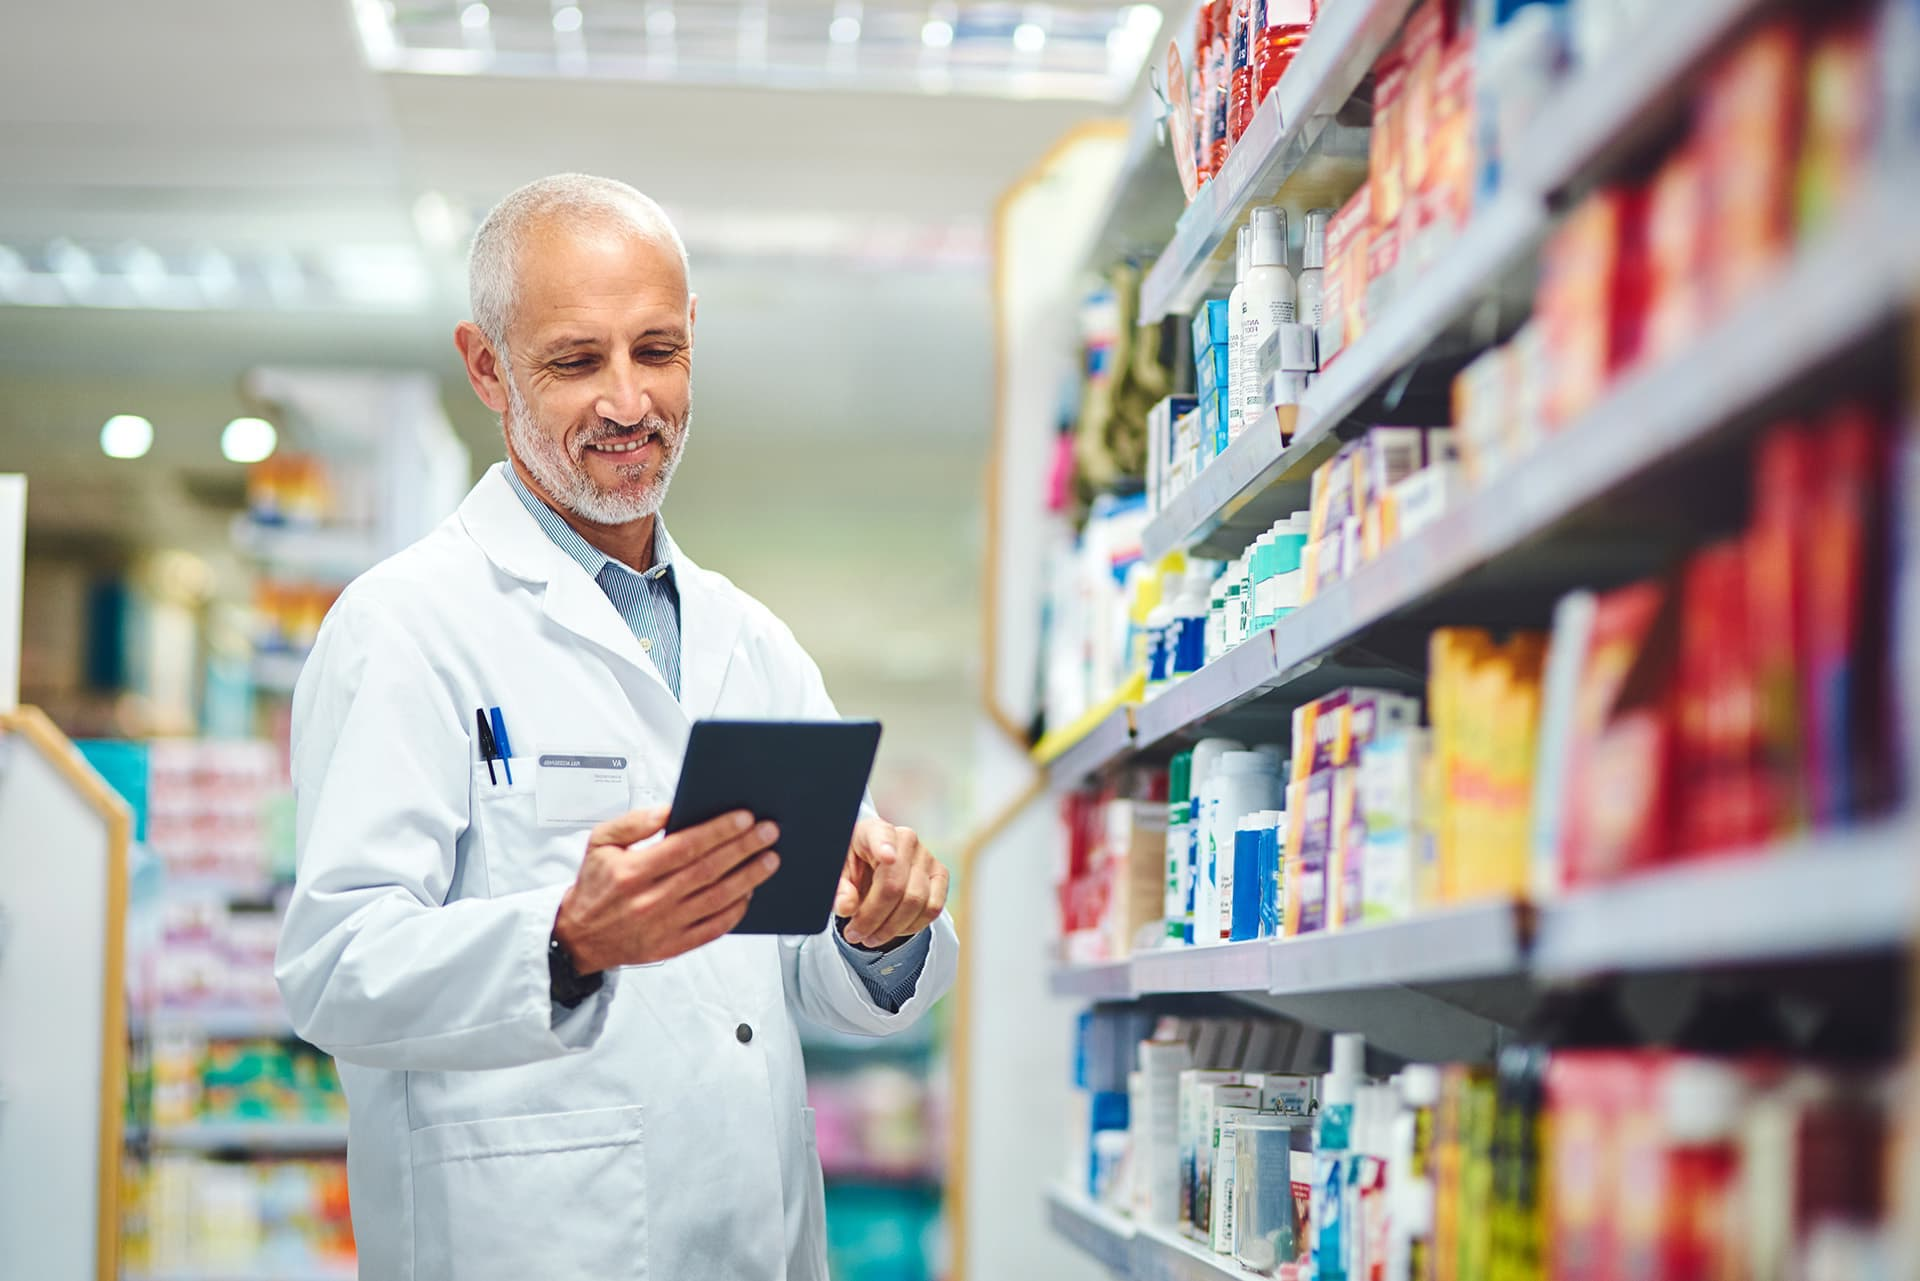 Pharmacist standing in an aisle of medicine, looking at his medical professional liability insurance on his tablet